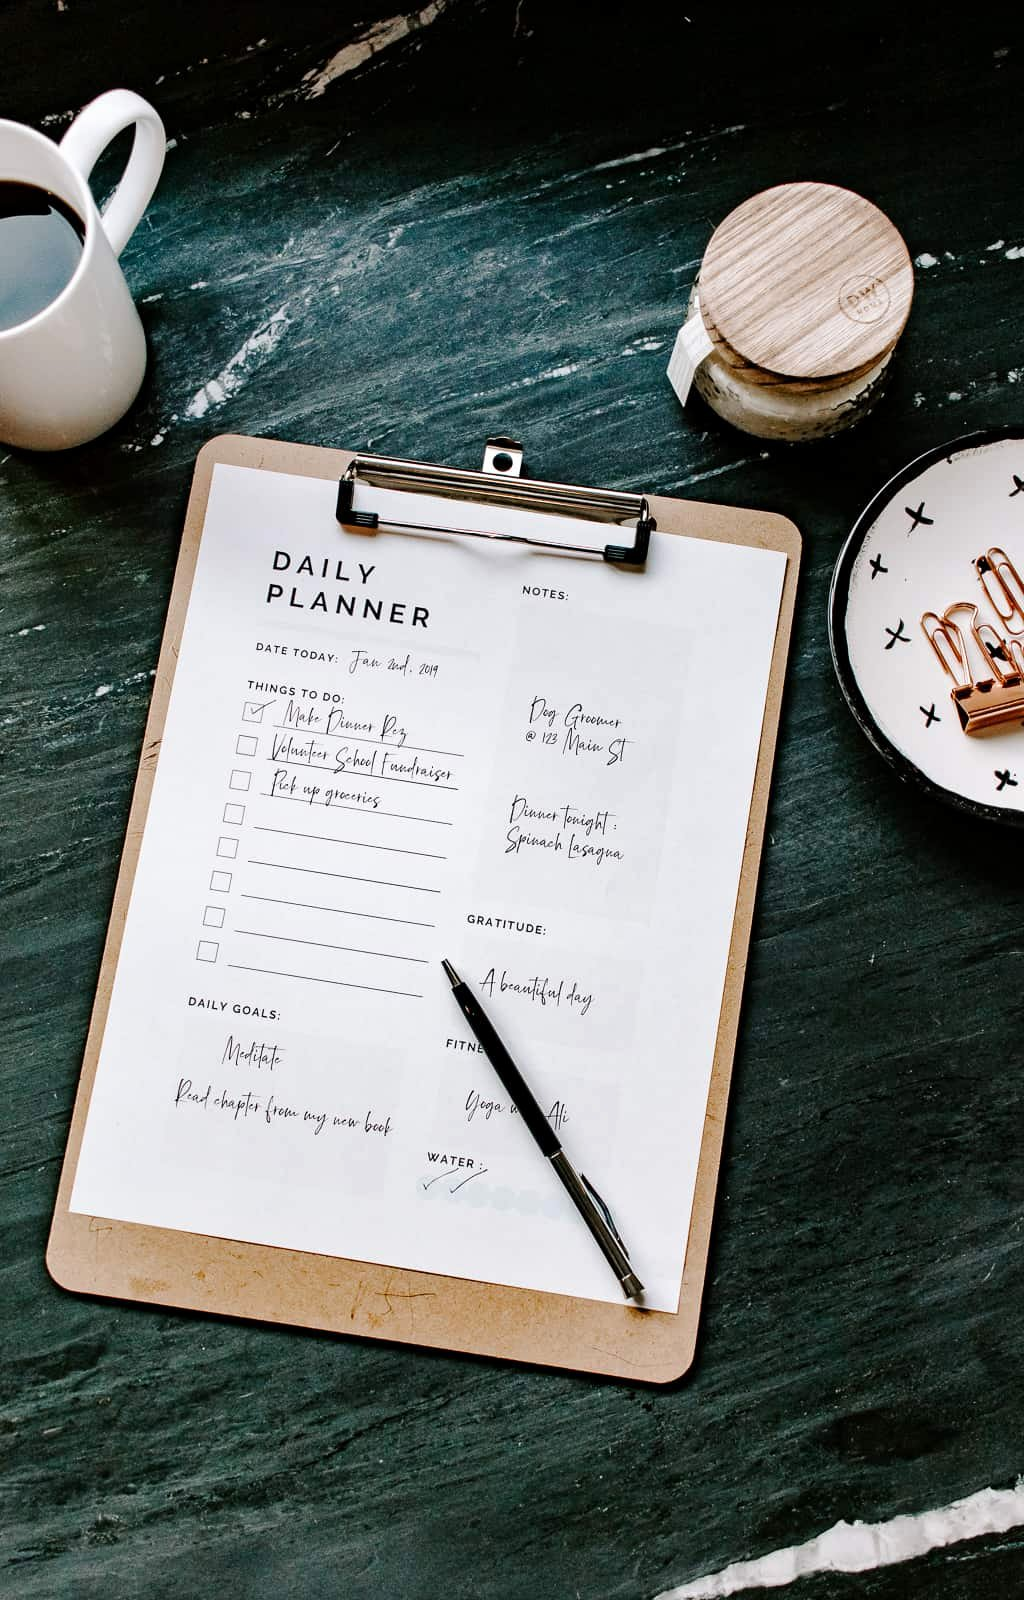 Printable Daily Planner 2019 Elegant Free Printable Daily Planner 2019 Decor Hint